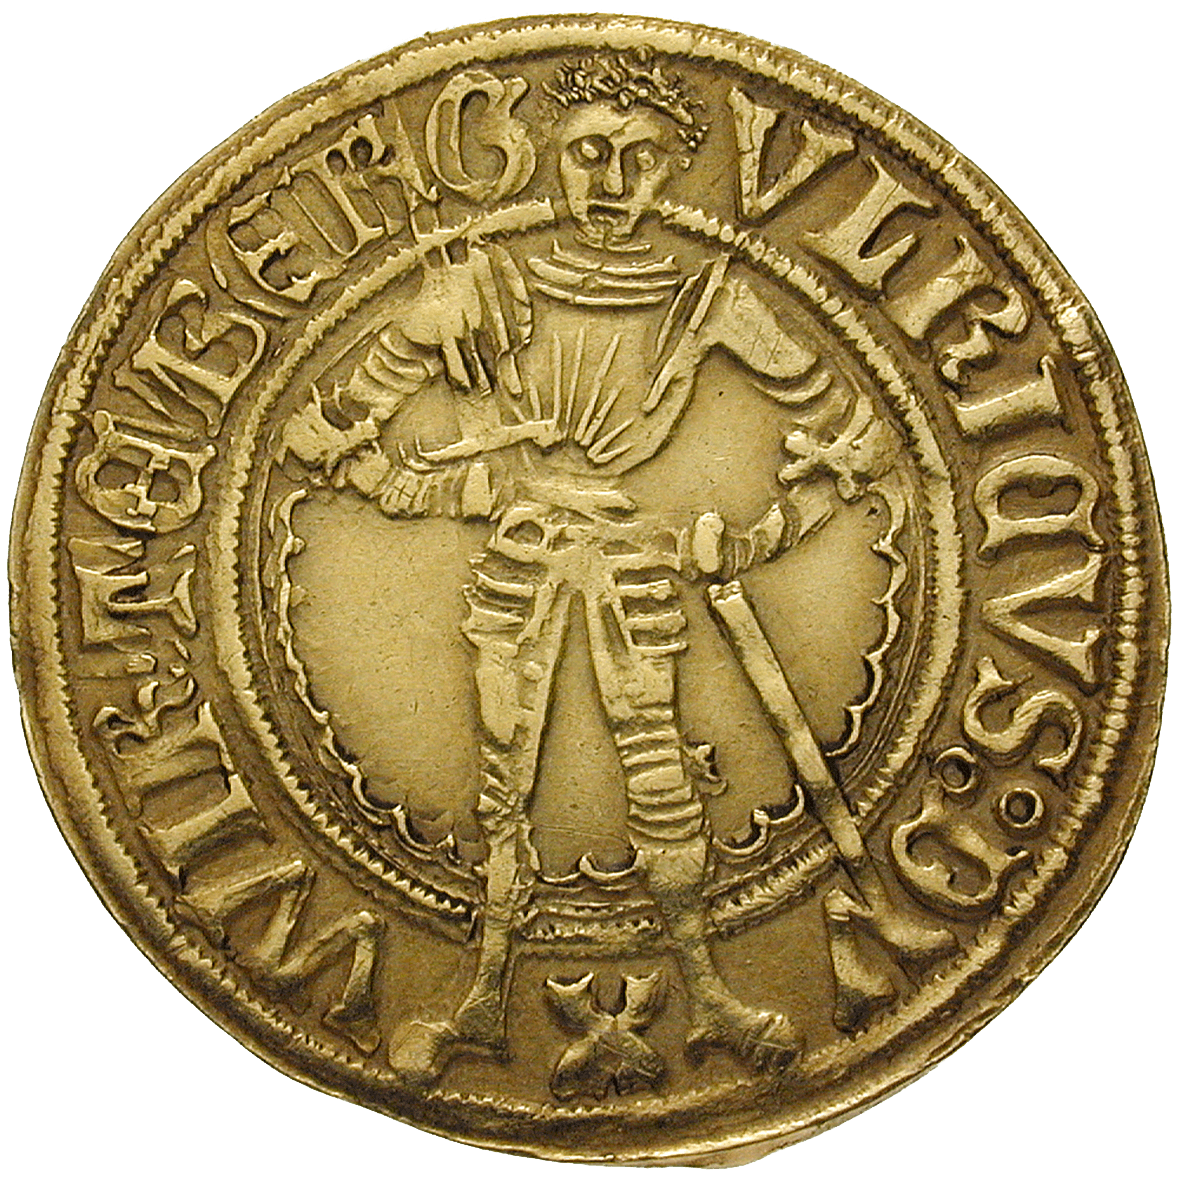 Holy Roman Empire, County of Württemberg, Ulrich, Goldgulden (obverse)